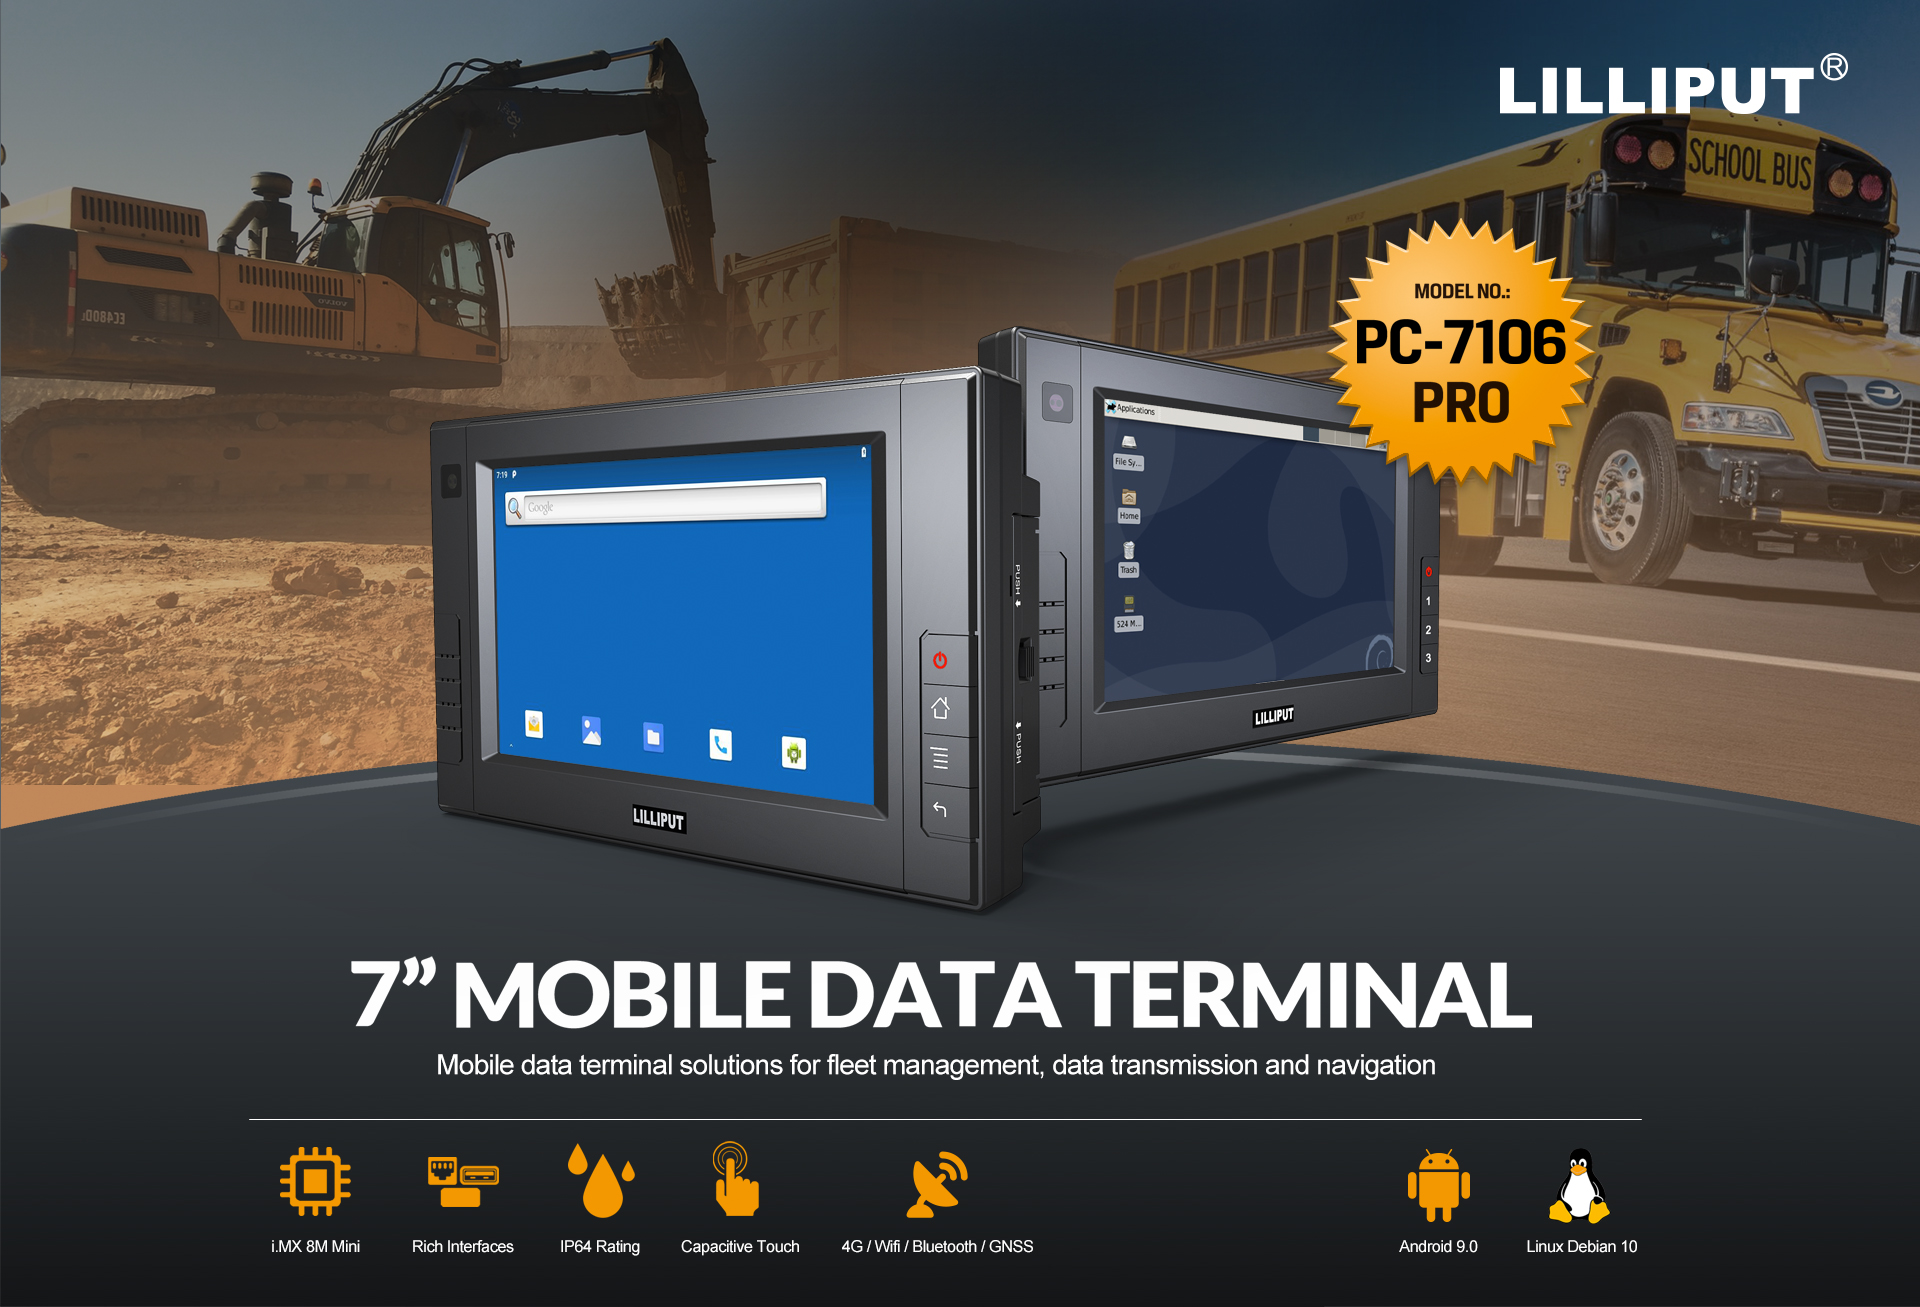 7 inch mobile data terminal